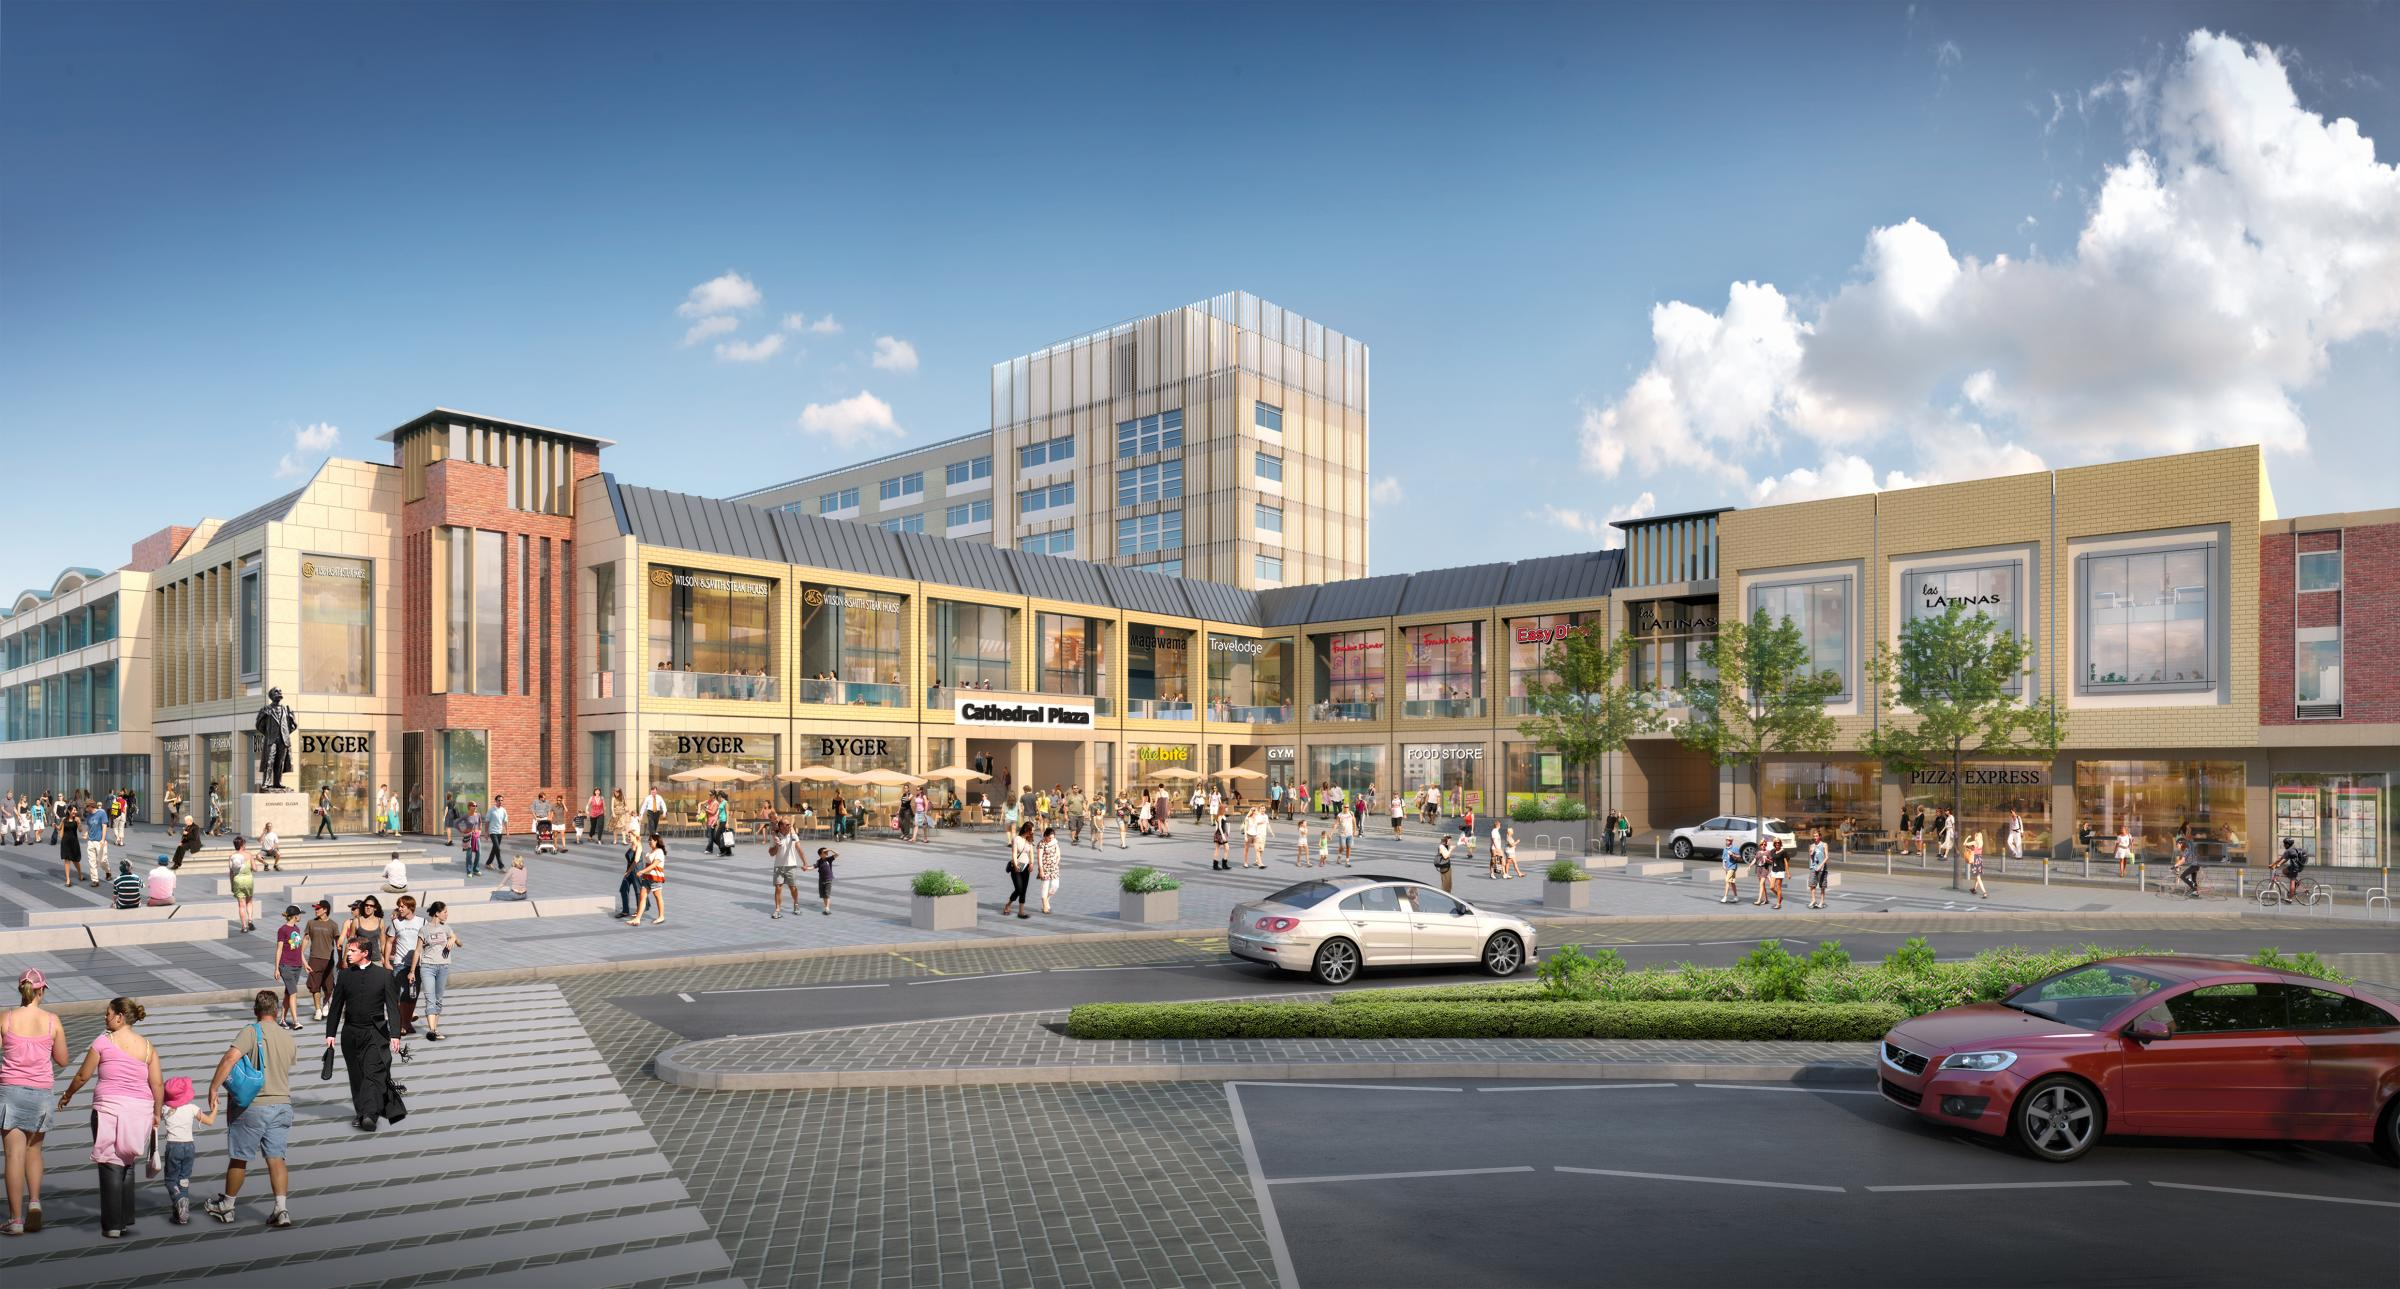 Cathedral Plaza shopping centre revamp could create 100 jobs for Worcester